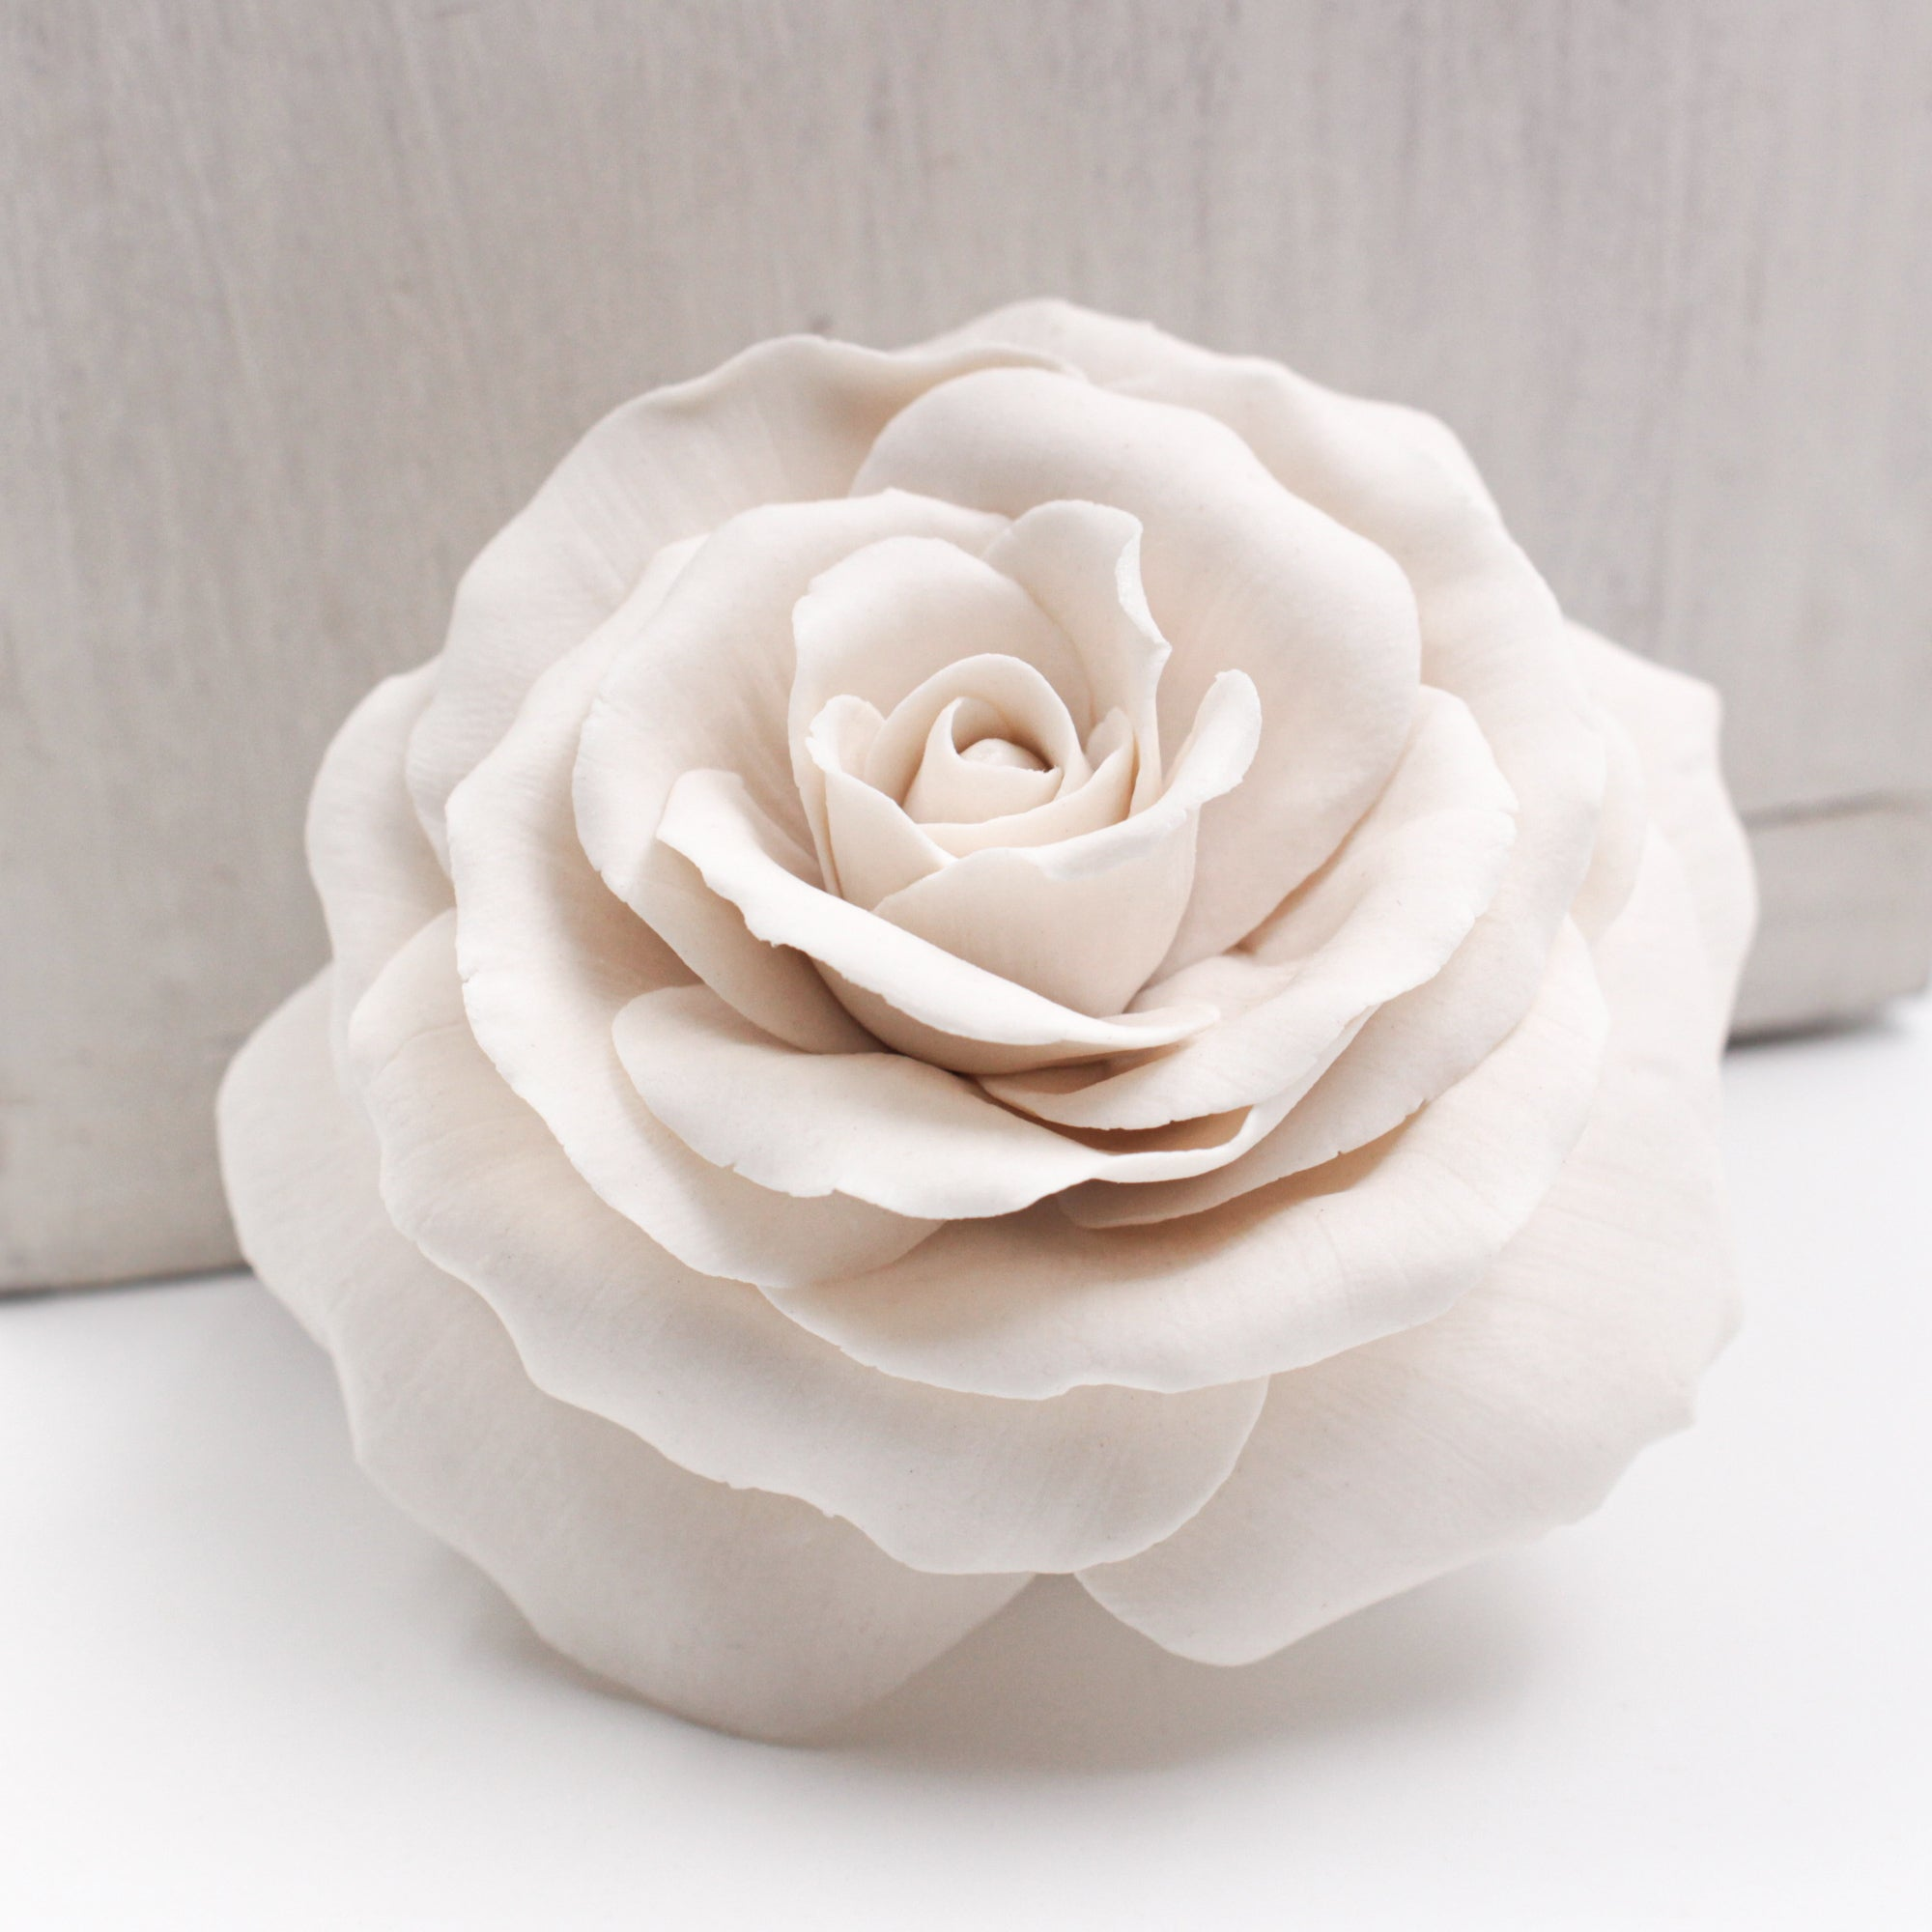 Porcelain Rose - Handmade Porcelain Flower for Interior and Event Decoration - Made in France by Alain Granell – Home and Wall Decoration